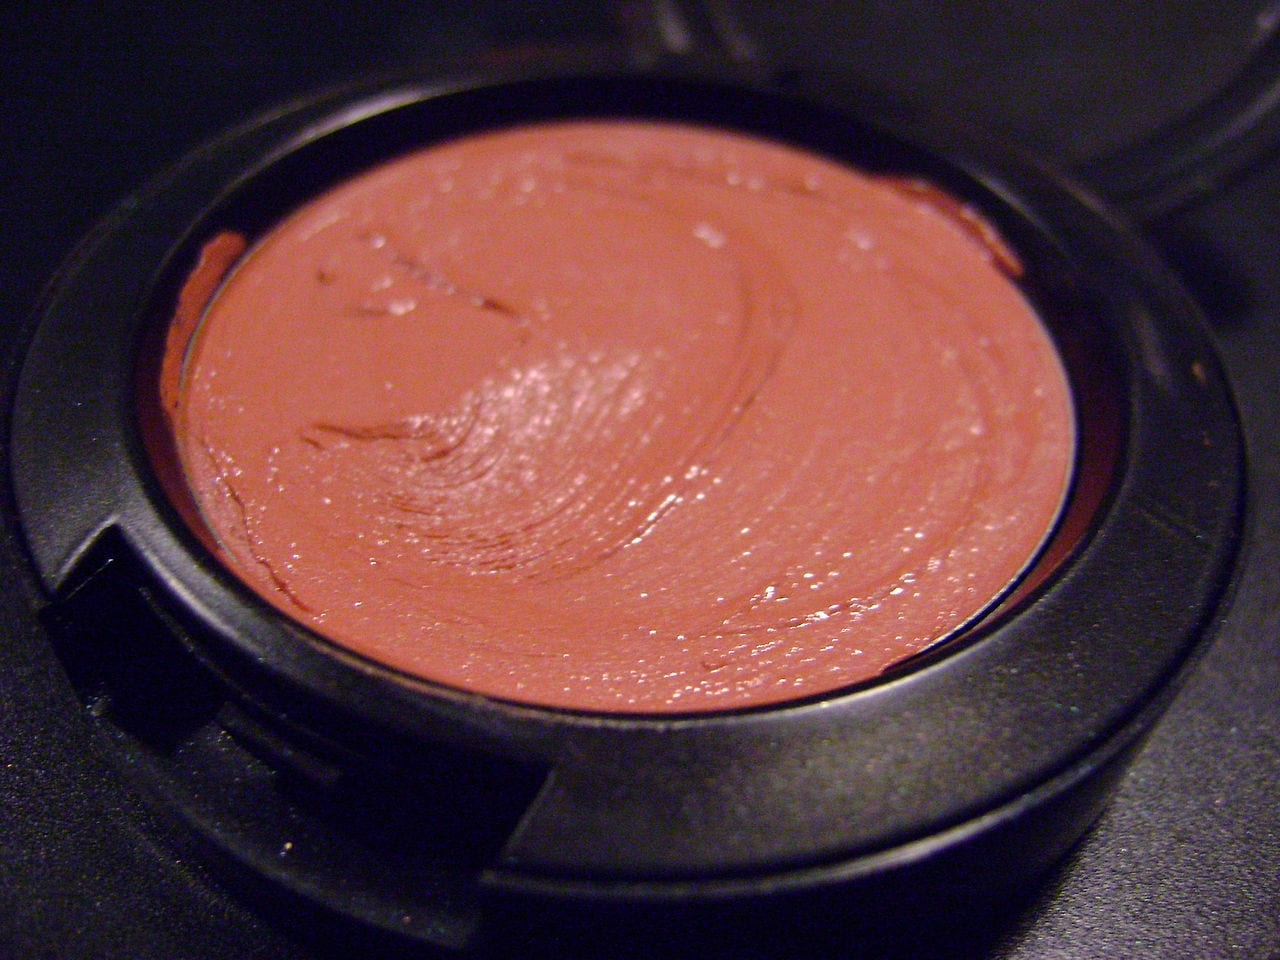 cream blush by Evi Michailidou wikimedia commons